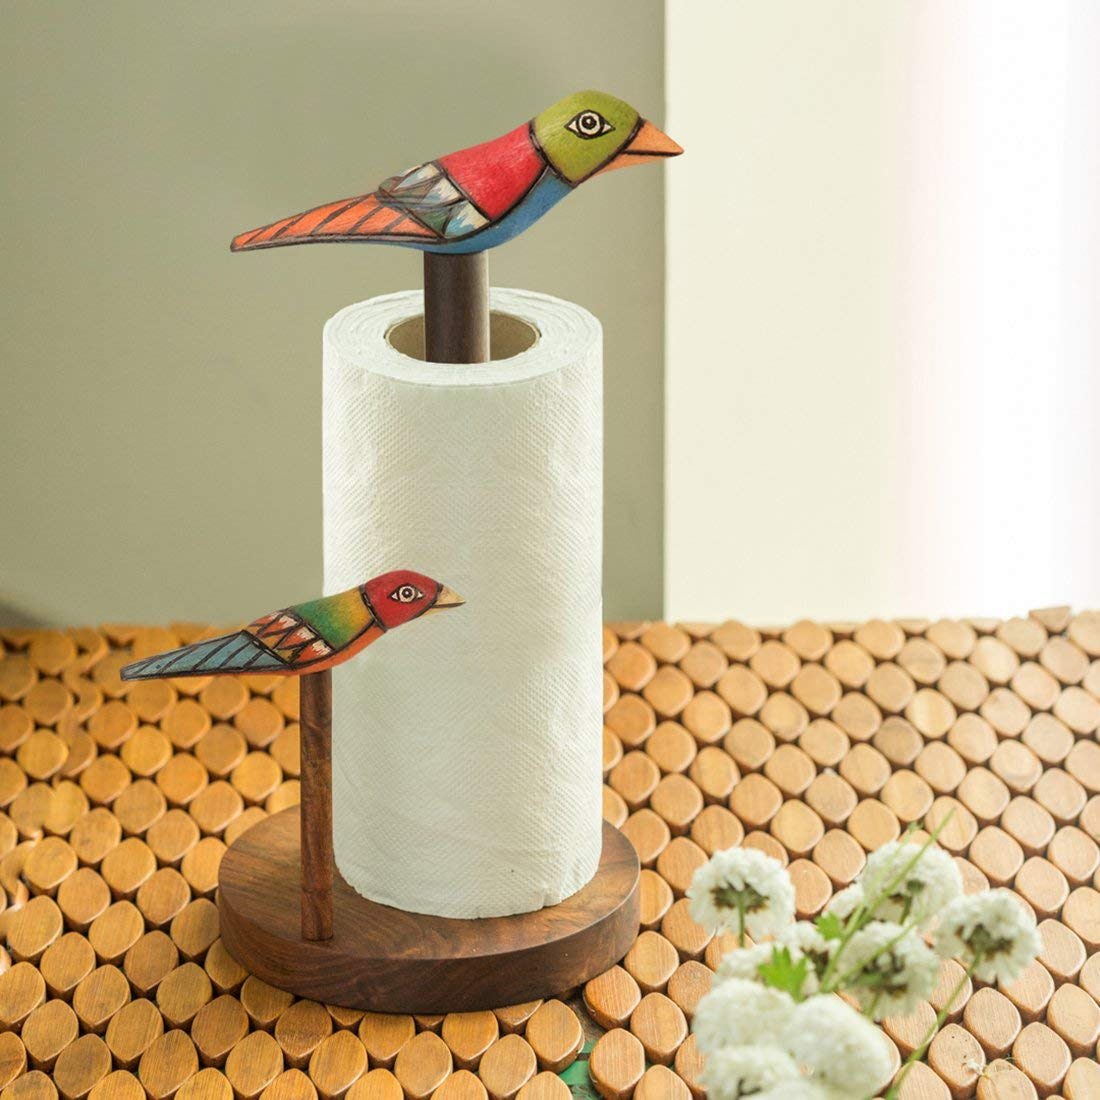 Star Home Bird and Branches 1-Piece Napkin Ring